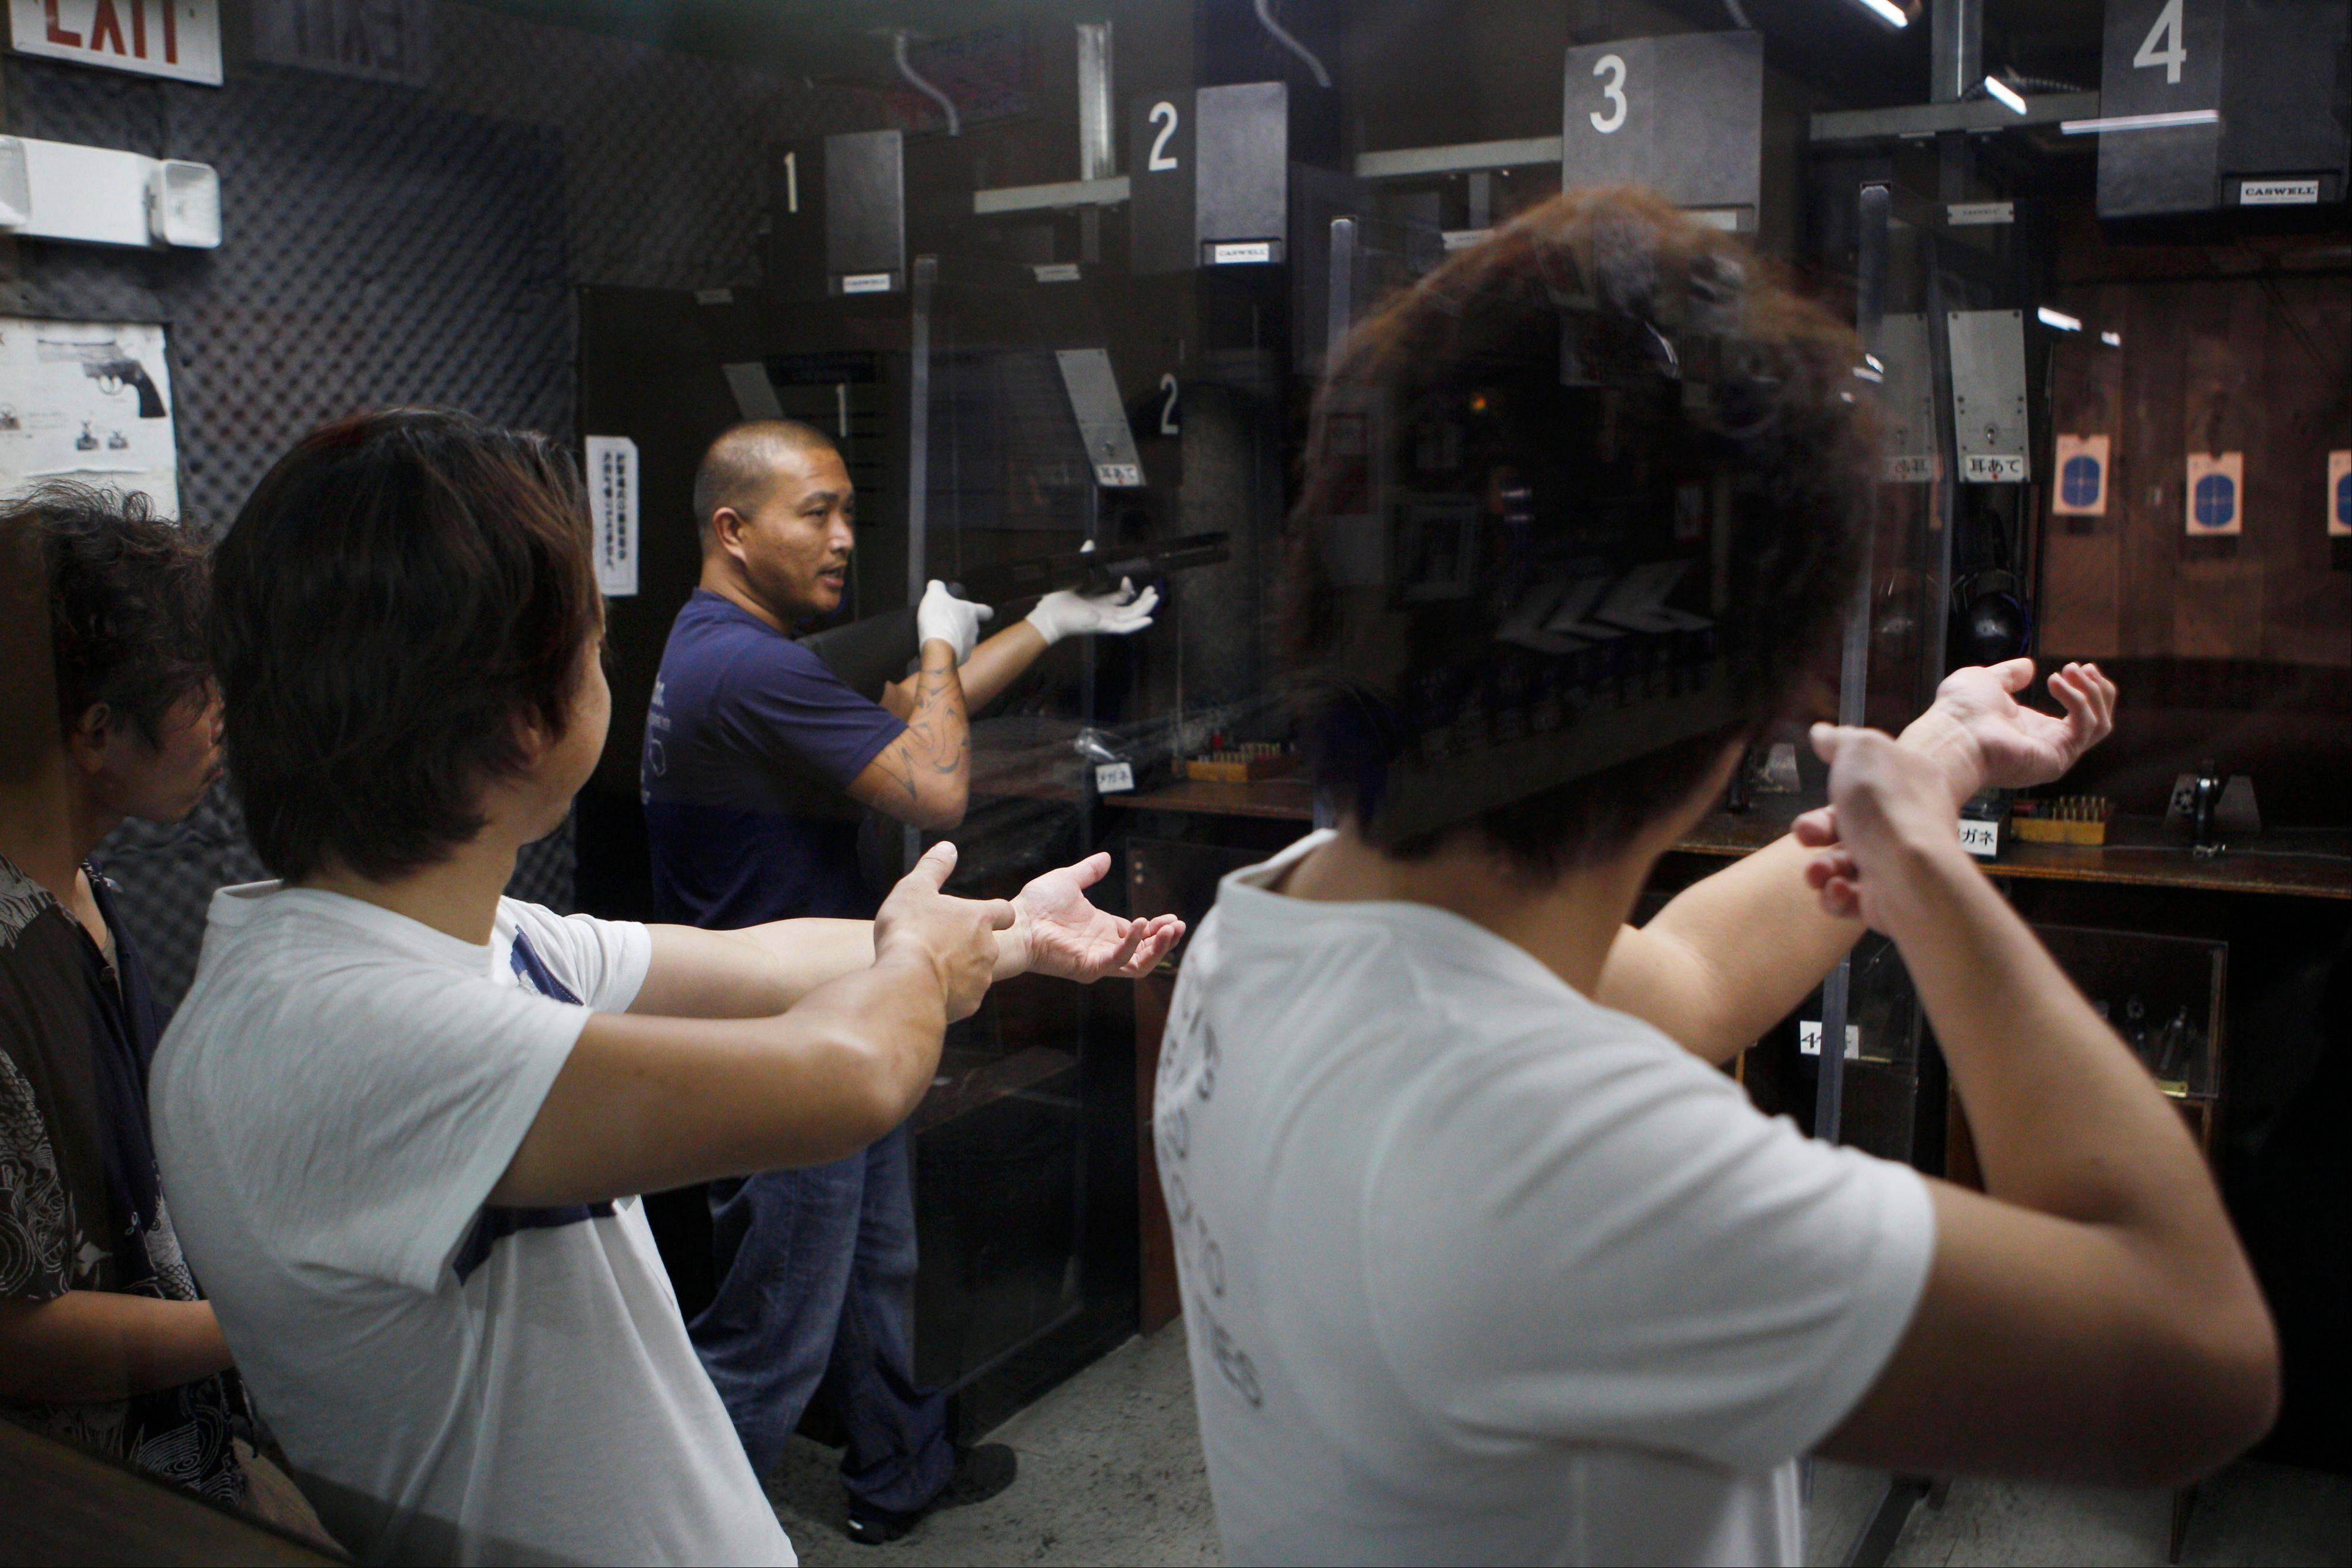 Japanese tourists are taught how to fire a rifle at the Western Frontier Village range in Tamuning, Guam.